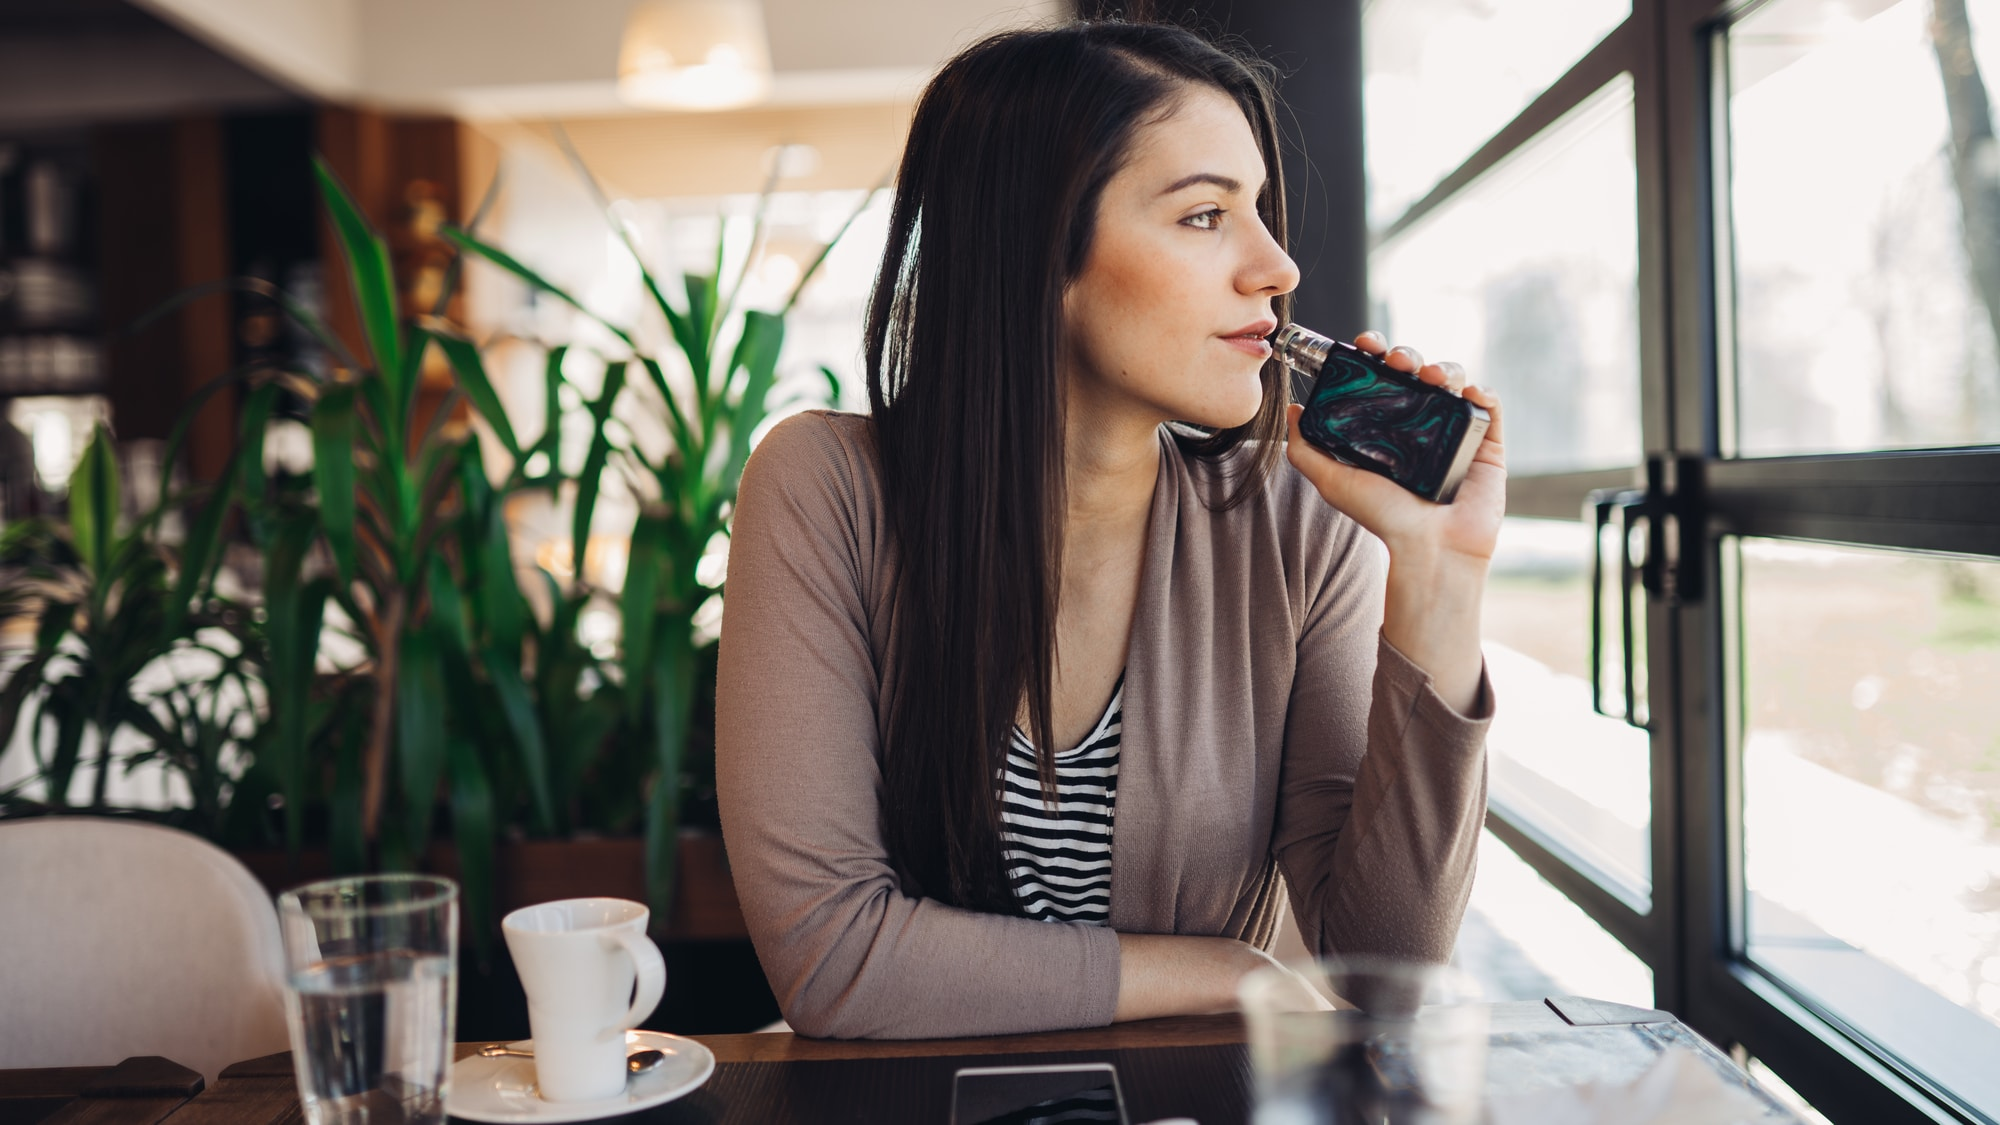 a young woman vaping in public